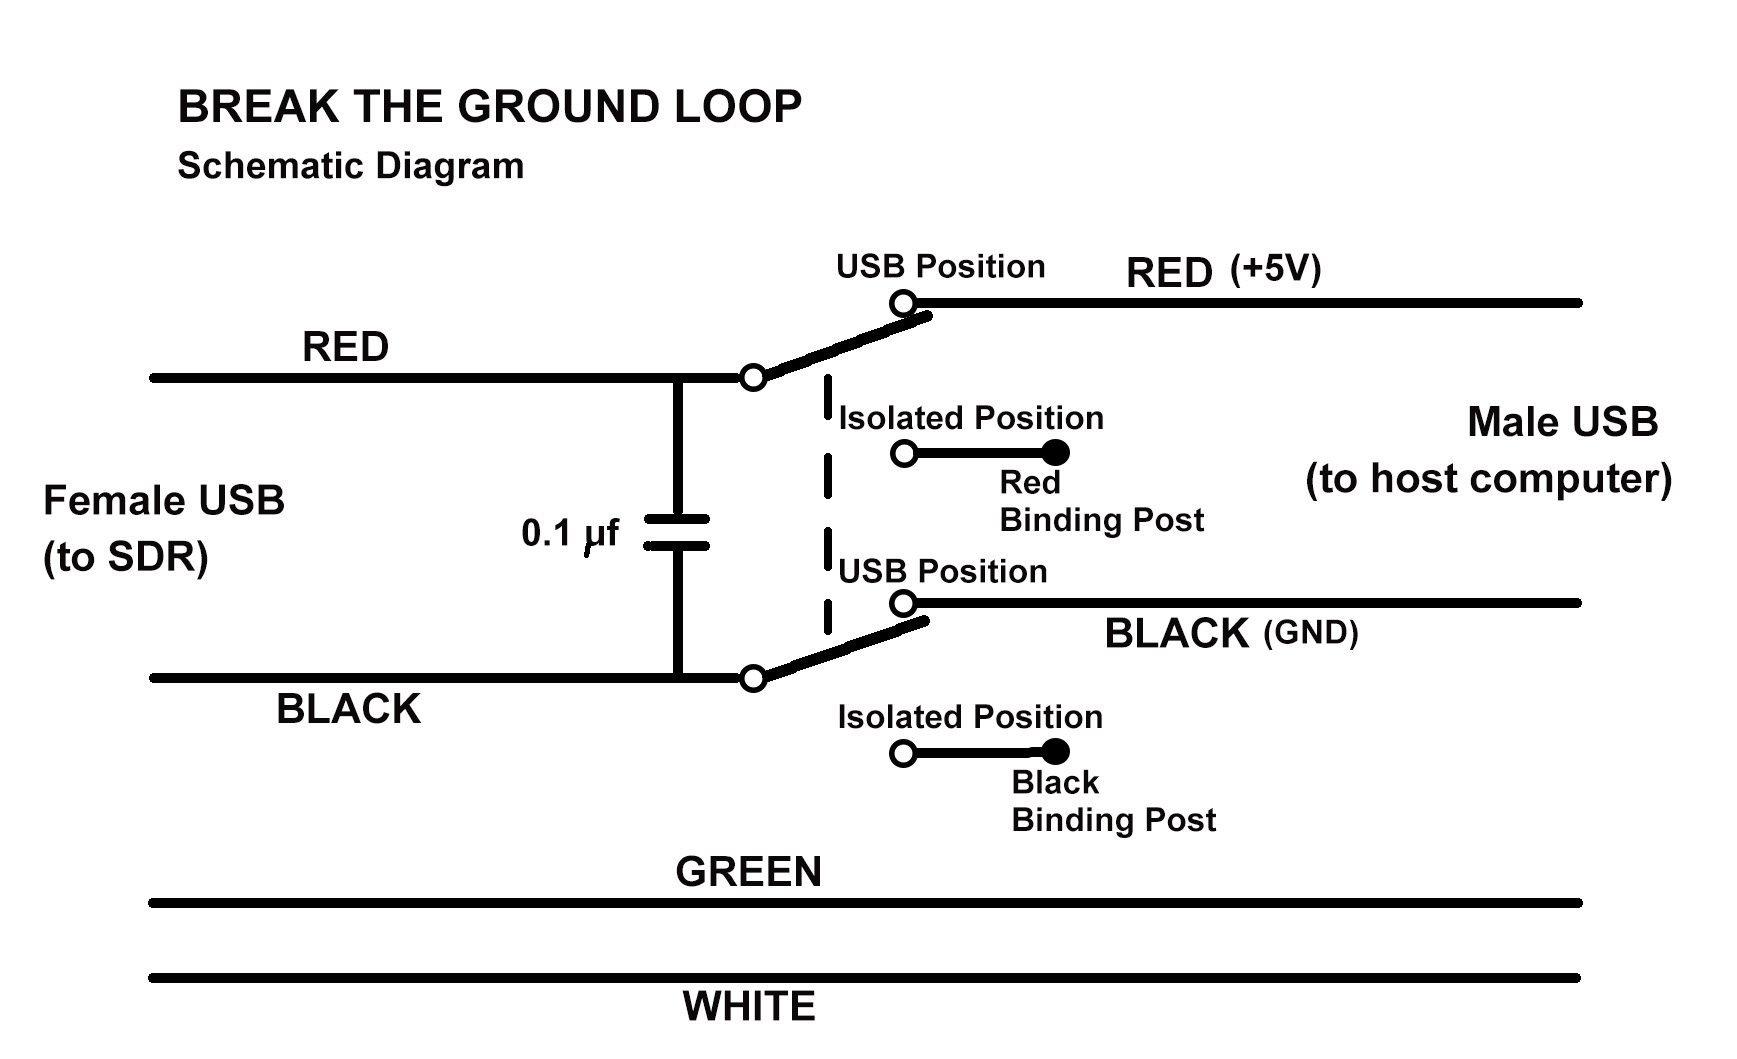 USB Isolators/Ground Loop Eliminators for Defined Radio ... on usb to ps 2 mouse wiring, usb camera diagram, usb otg diagram, usb 2.0 schematic, usb color diagram, usb electrical diagram, usb to serial wiring-diagram, usb 2.0 cable diagram, usb b diagram, usb cable drawing, usb to rca wiring-diagram, usb wall charger amazon, usb connections diagram, usb cable assembly, usb cable types, usb pinout diagram, usb cable switch, usb cable pinout, usb to db9 wiring-diagram, usb cable cable,